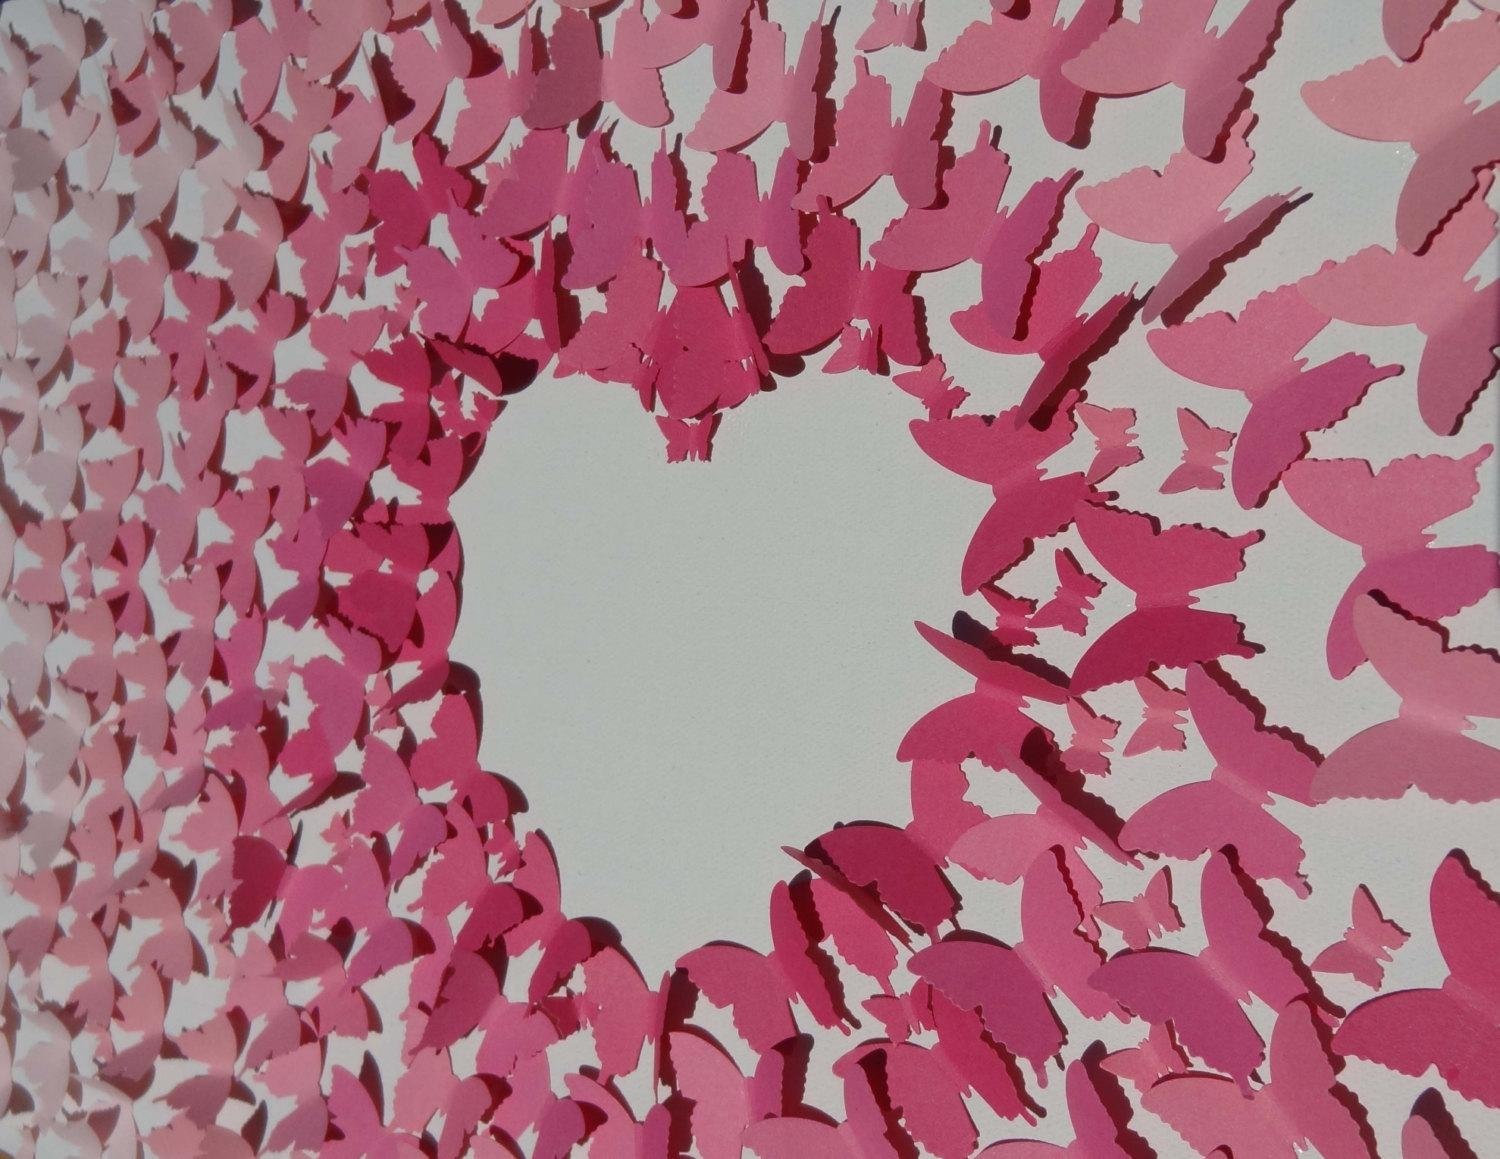 Butterfly Wall Art Pink Ombre' 3D Heart Negative Space Intended For Pink Butterfly Wall Art (Image 11 of 20)